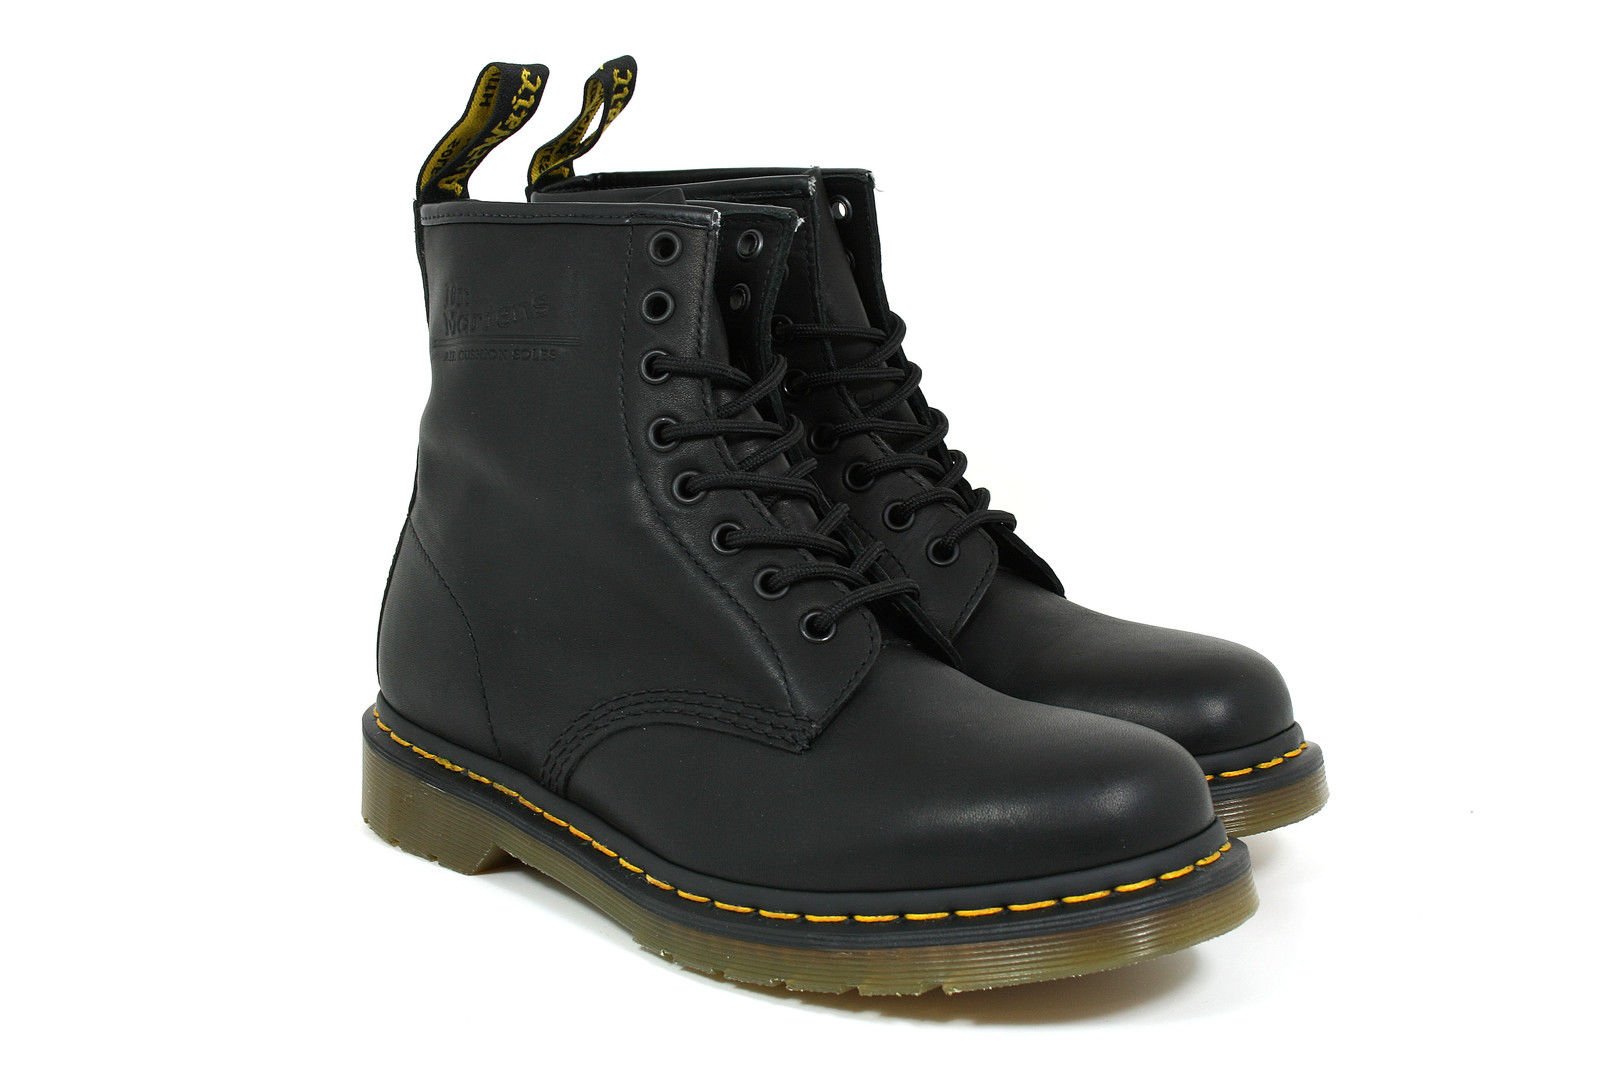 Dr. Martens - 1460 Z DMC - Black Greasy